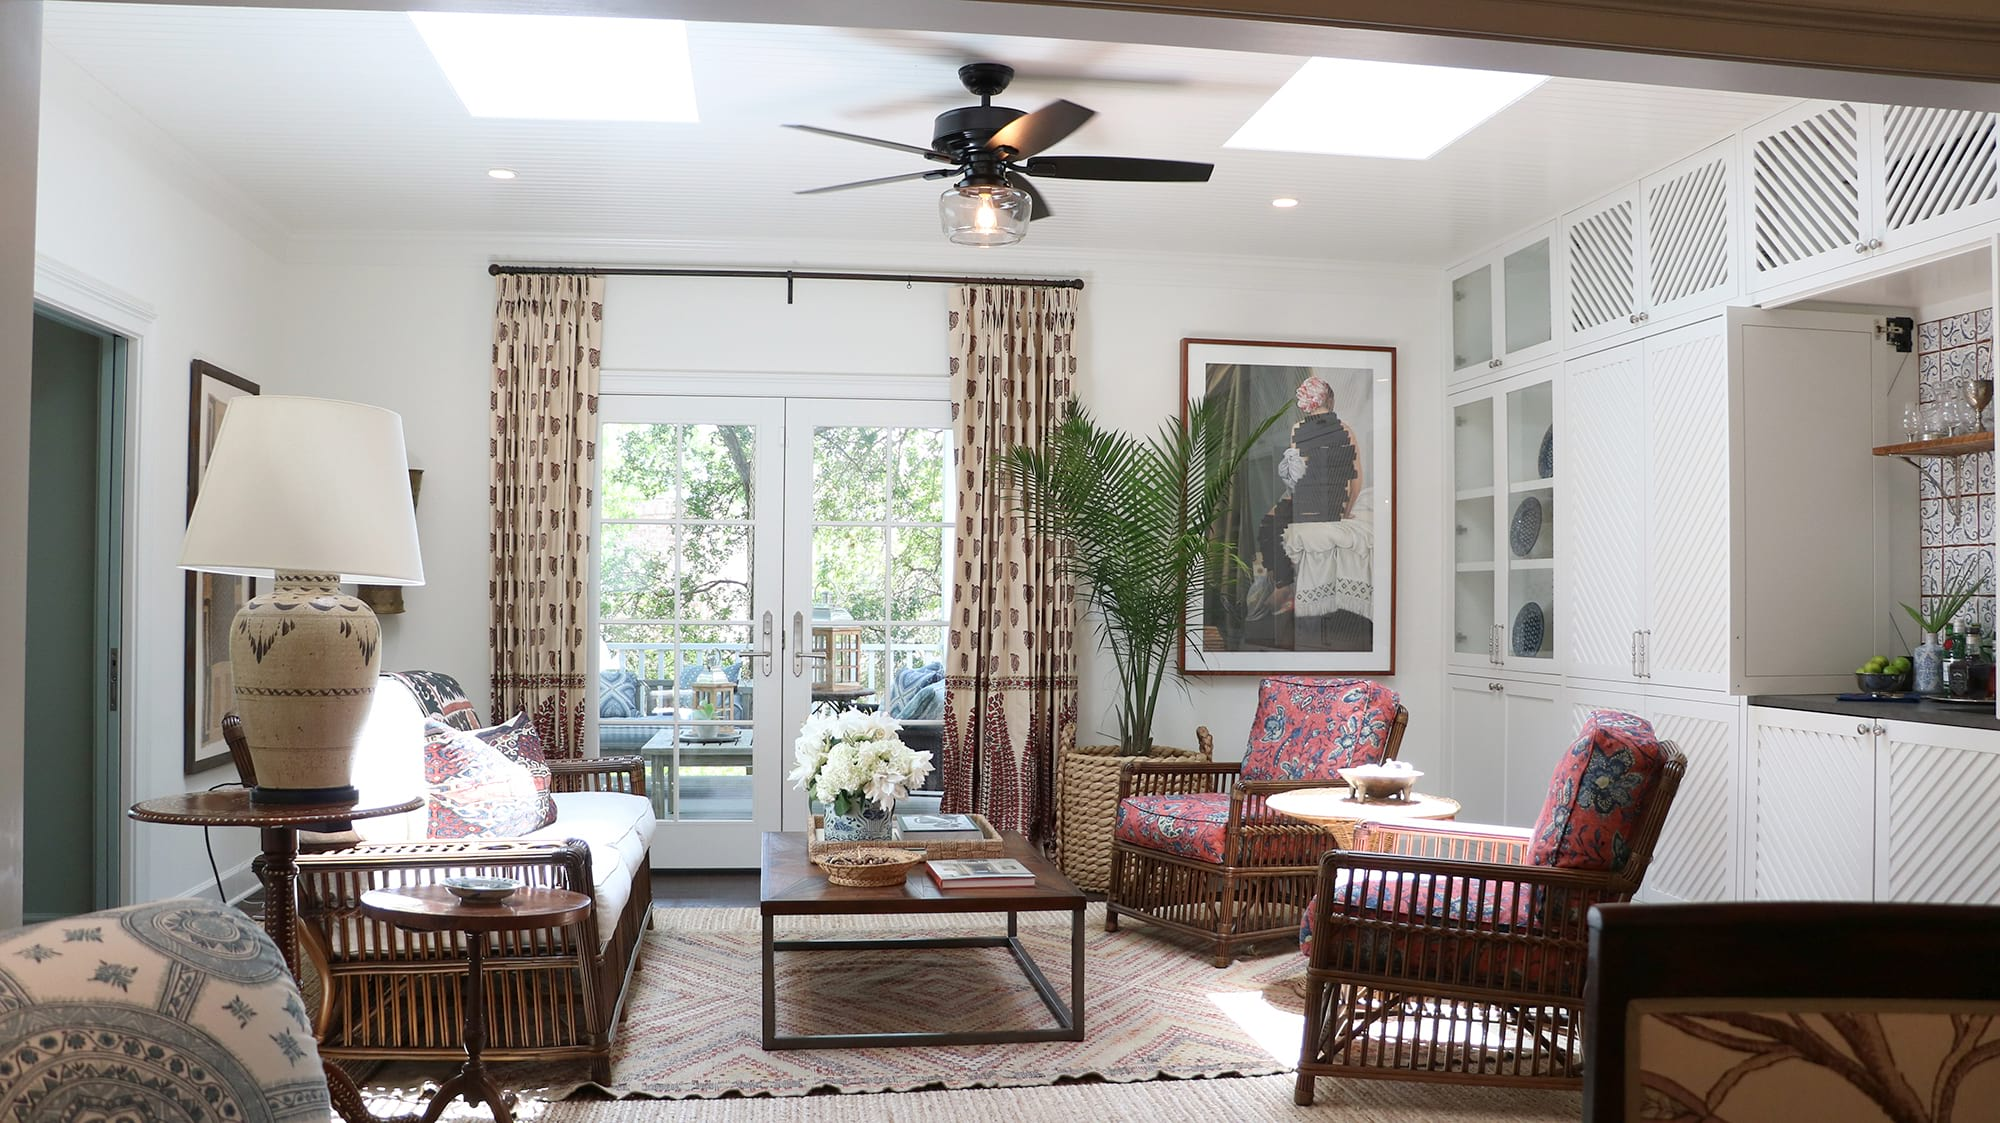 Bennett ceiling fan in sunroom